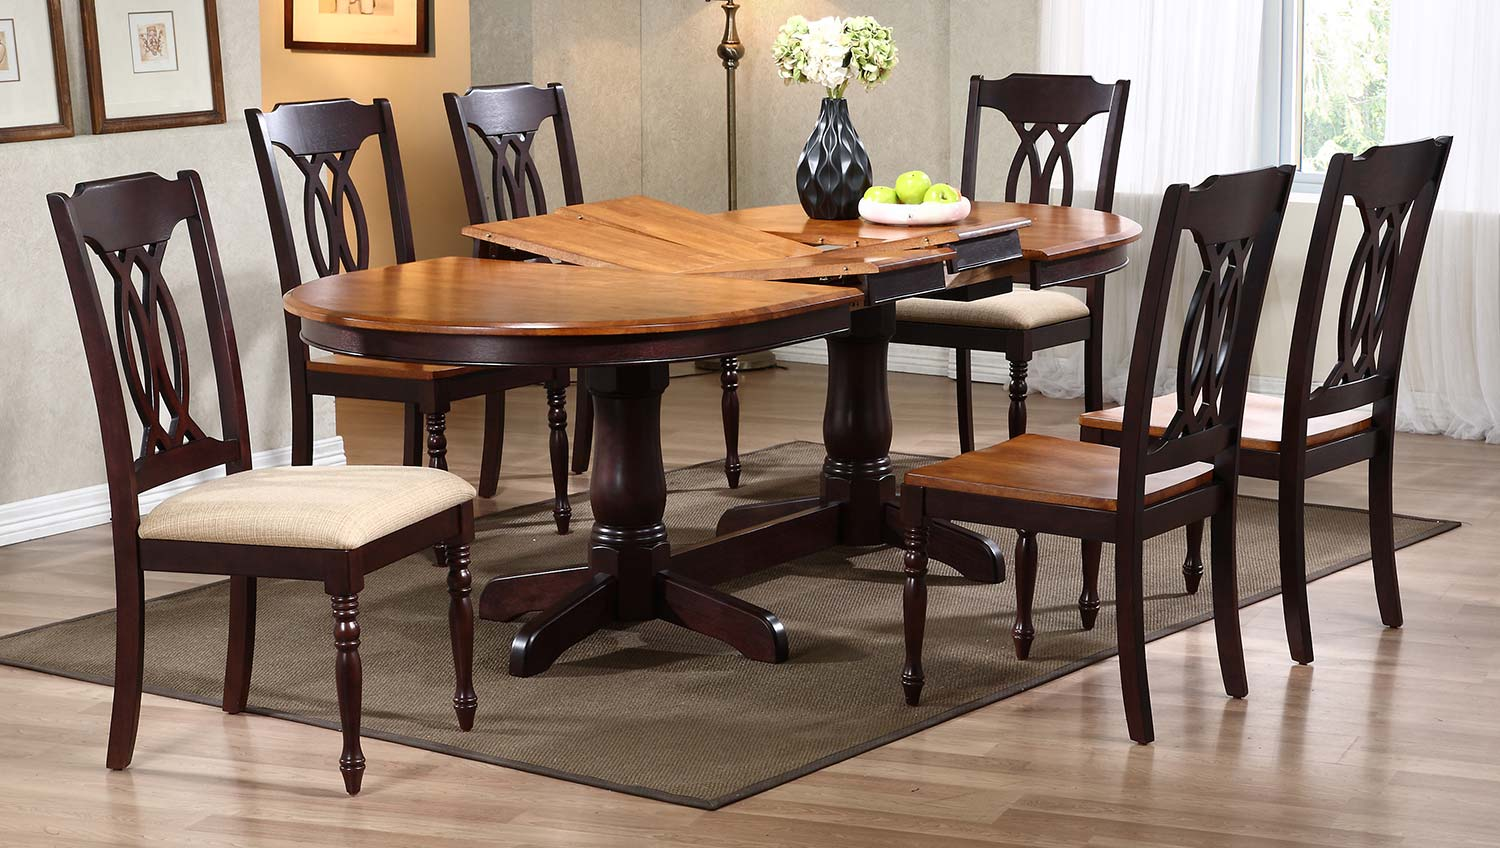 Iconic Furniture Oval Double Pedestal Dining Set with Traditional Back Chair - Whiskey/Mocha